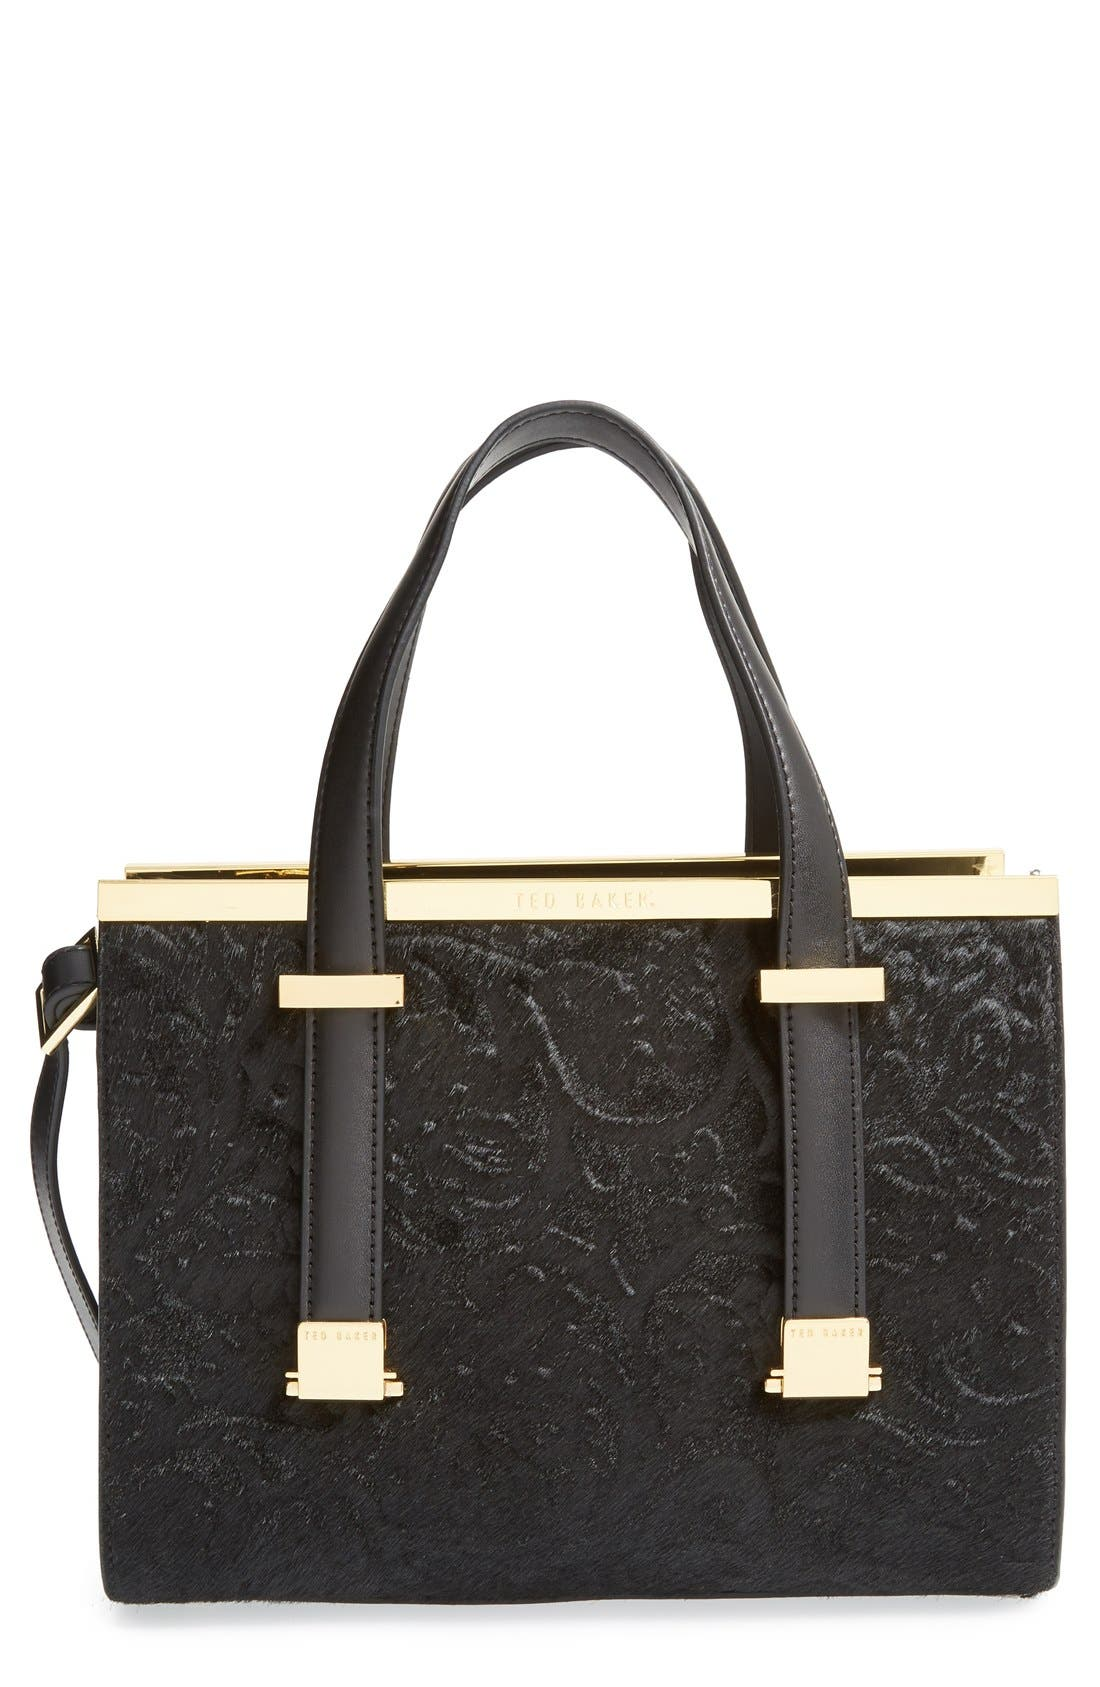 Main Image - Ted Baker London 'Minipel' Textured Metal Tote